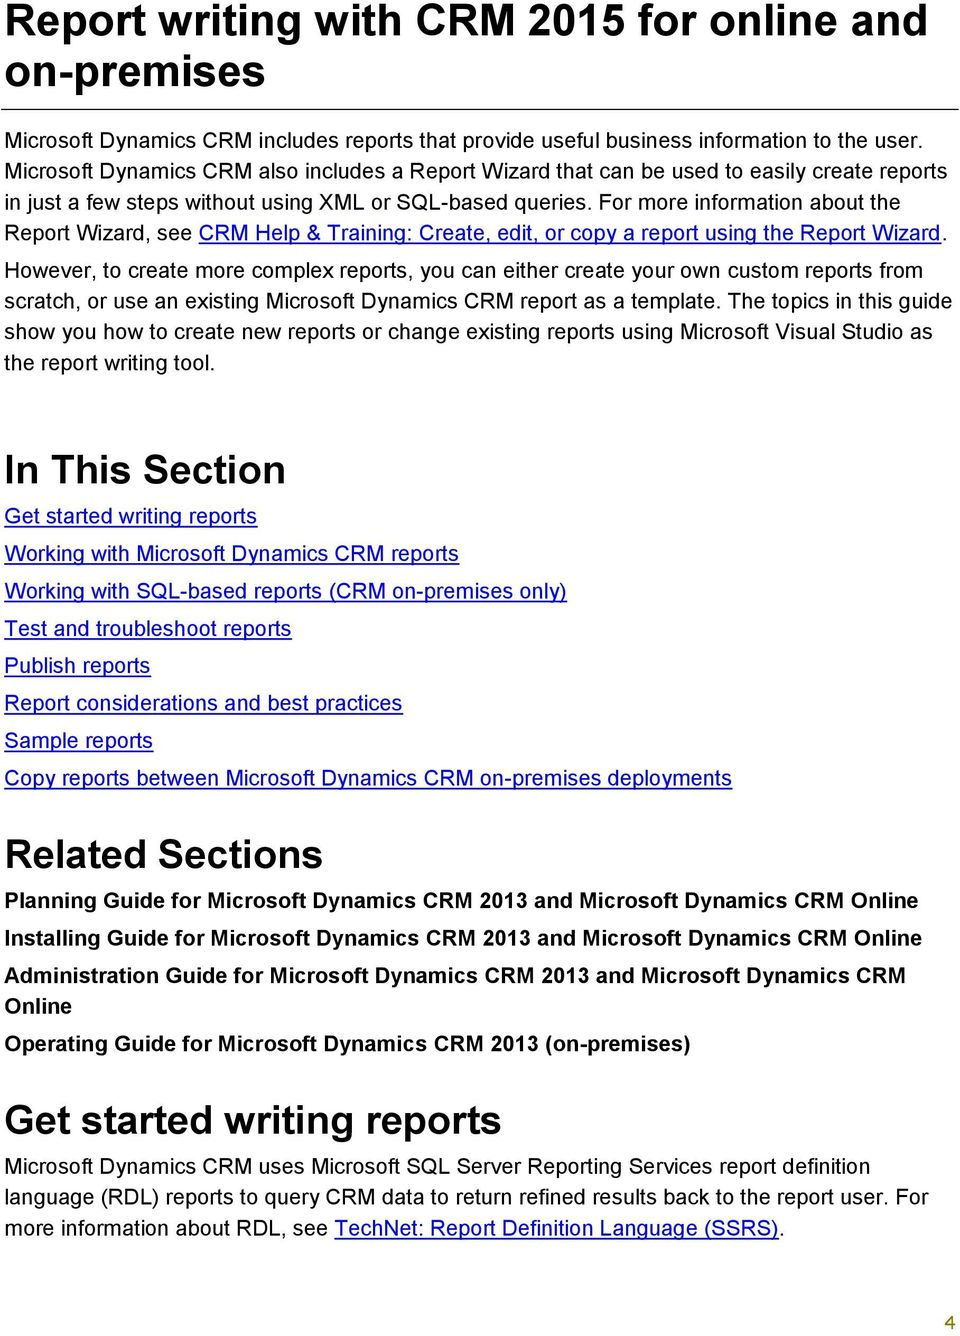 Step by step guide to creating a crm 2013 online trial microsoft.